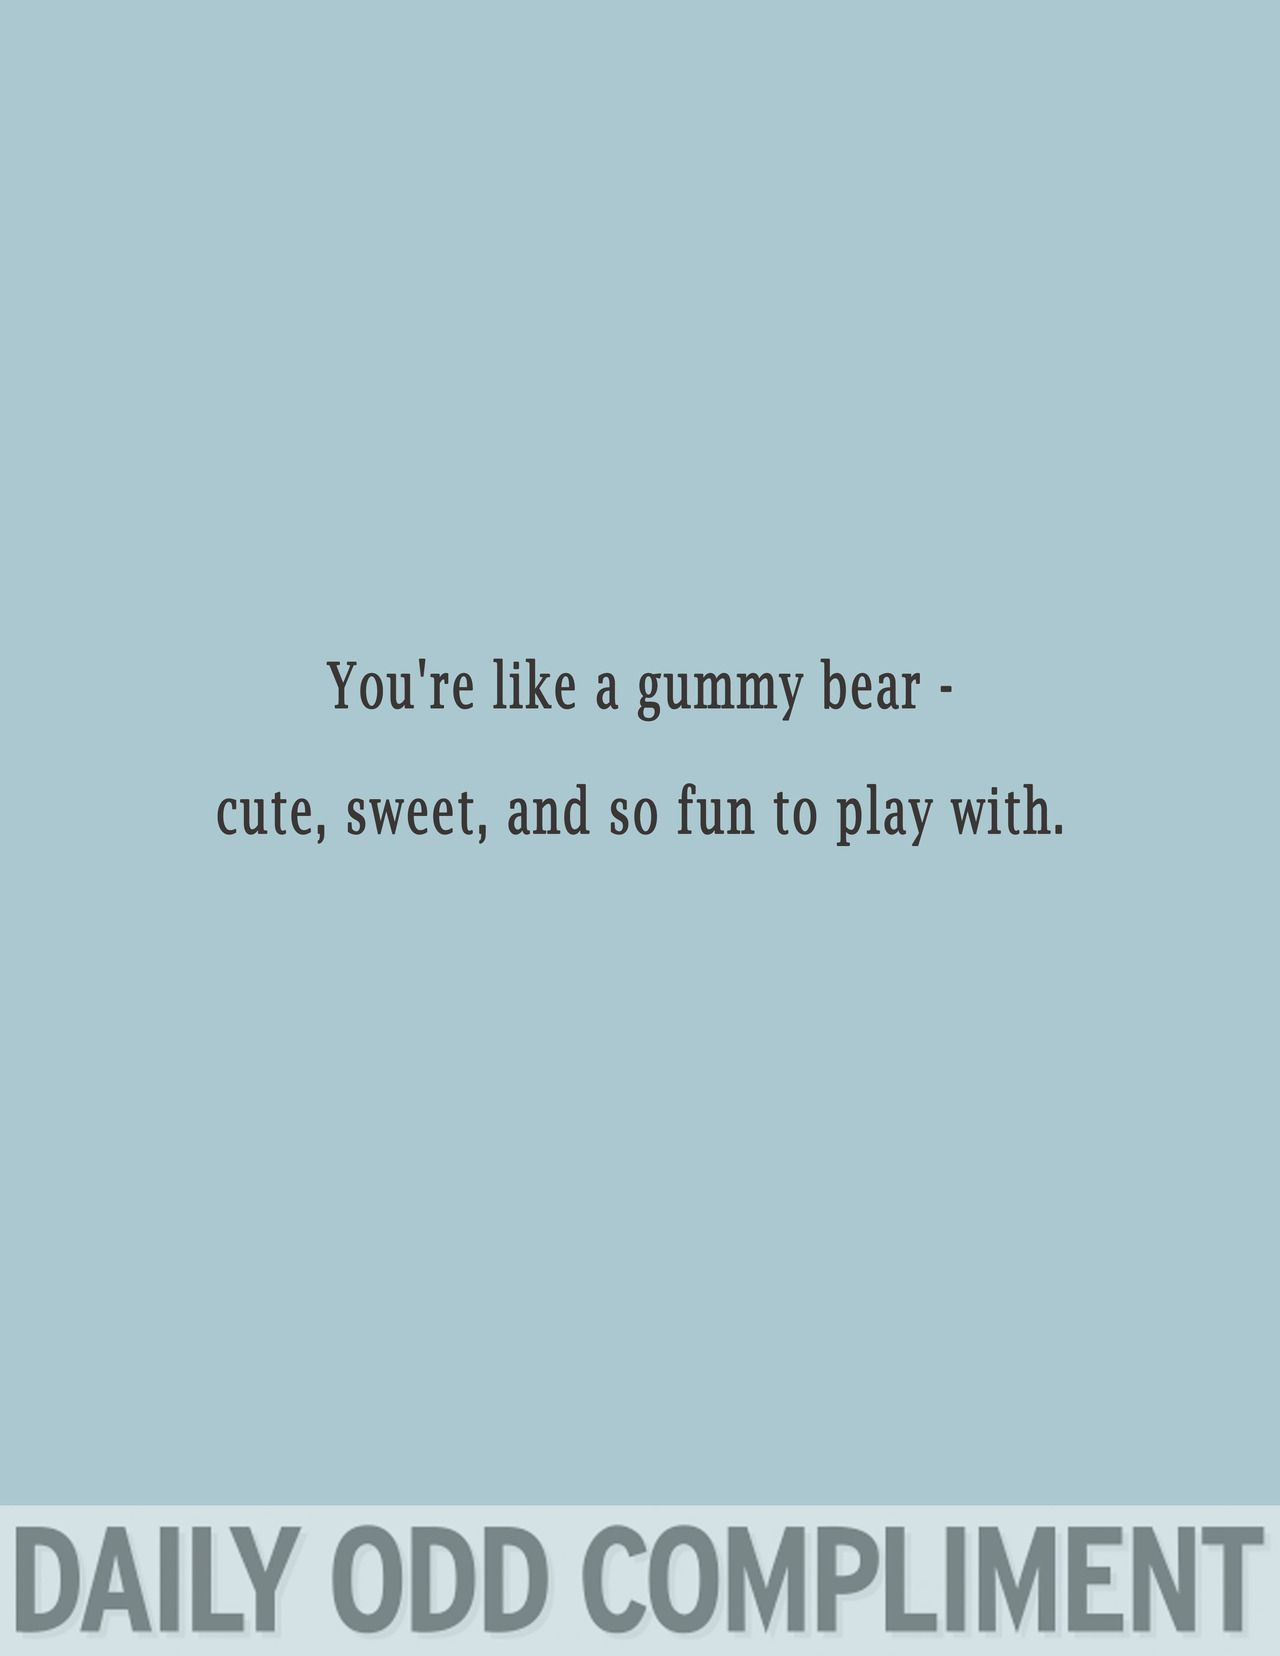 Funny Daily Quotes Dailyoddcompliment  Odd Compliments Daily Odd And Humor